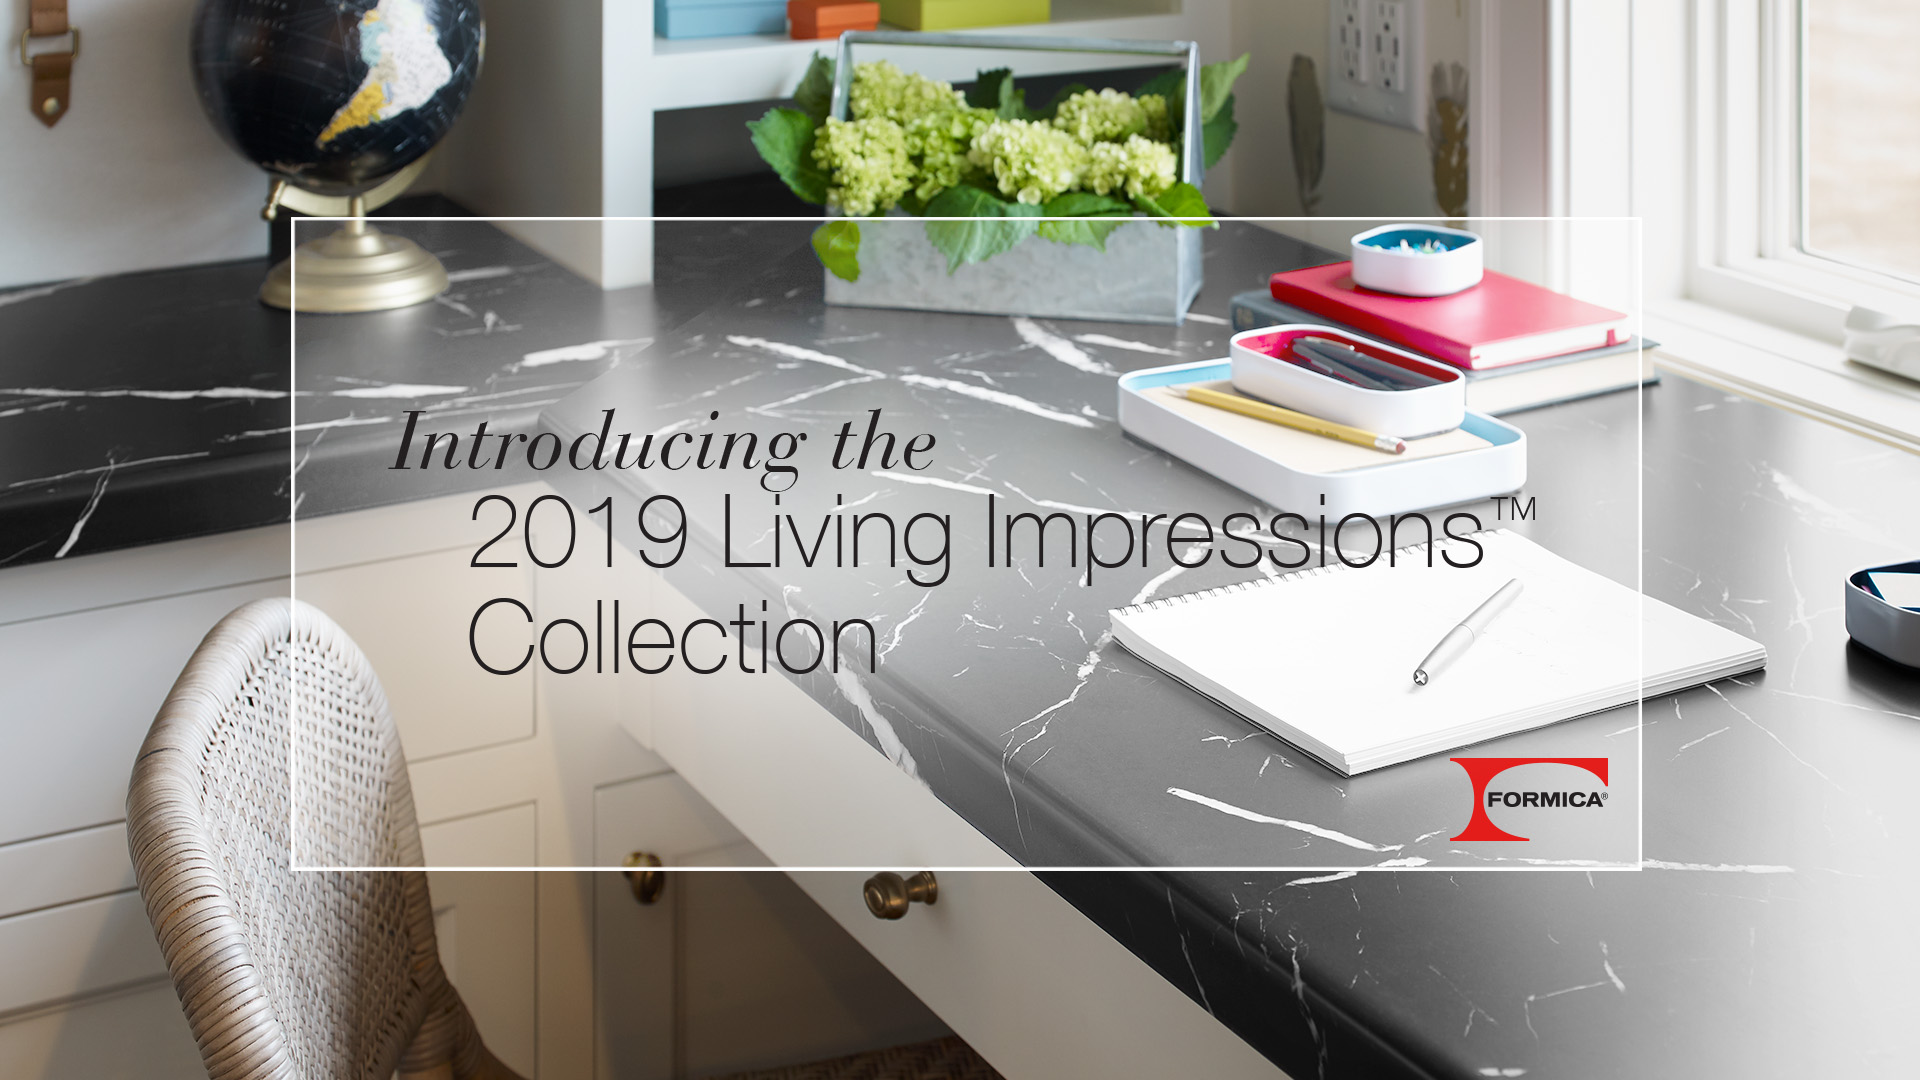 2019 Living Impressions Launch Video